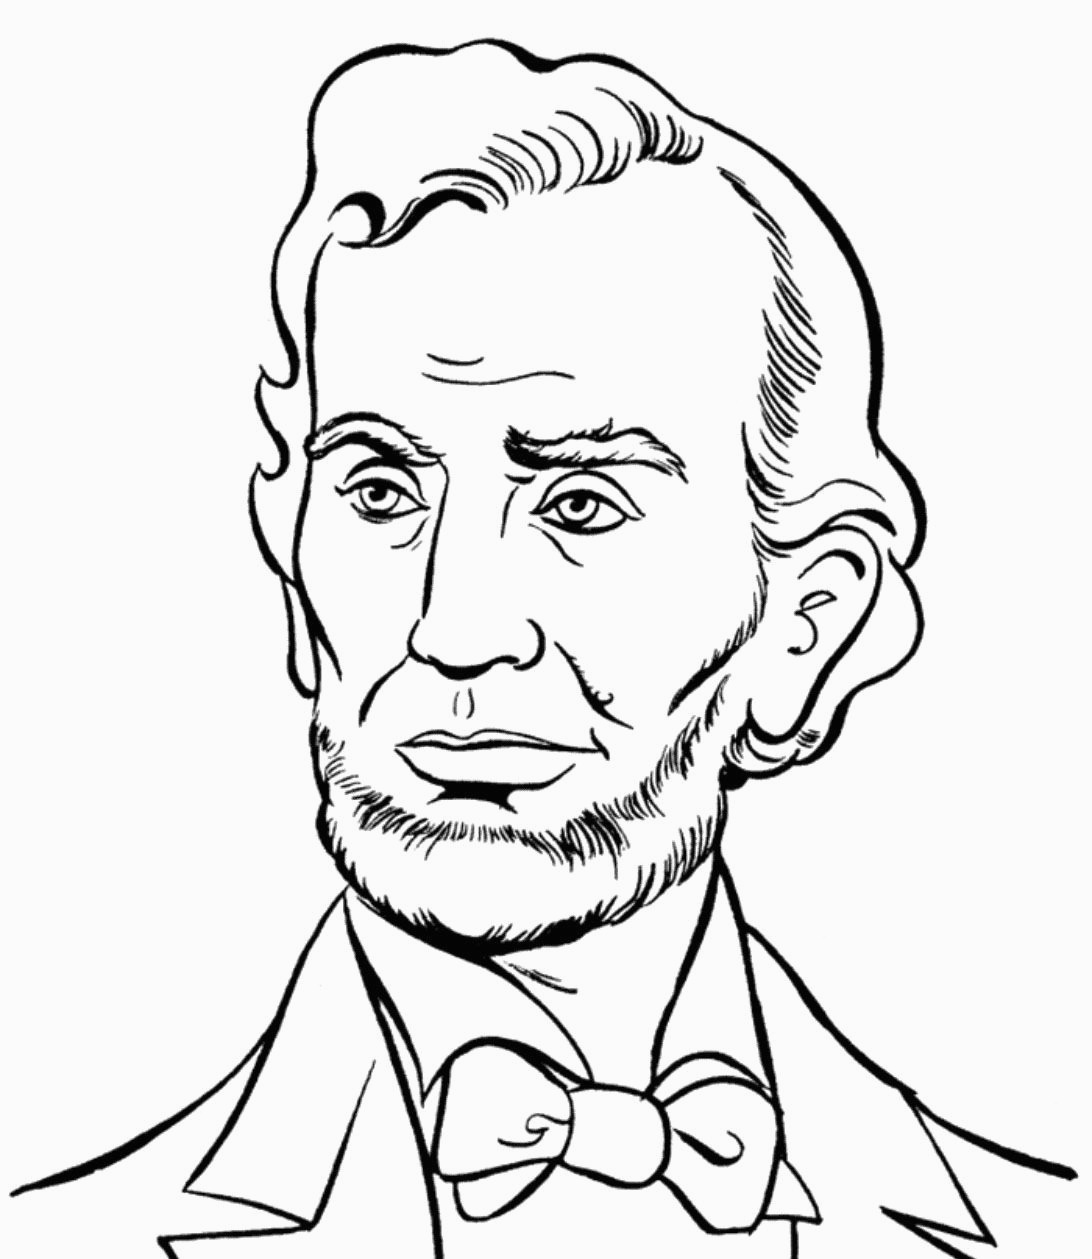 Collection of Abraham lincoln clipart | Free download best ...